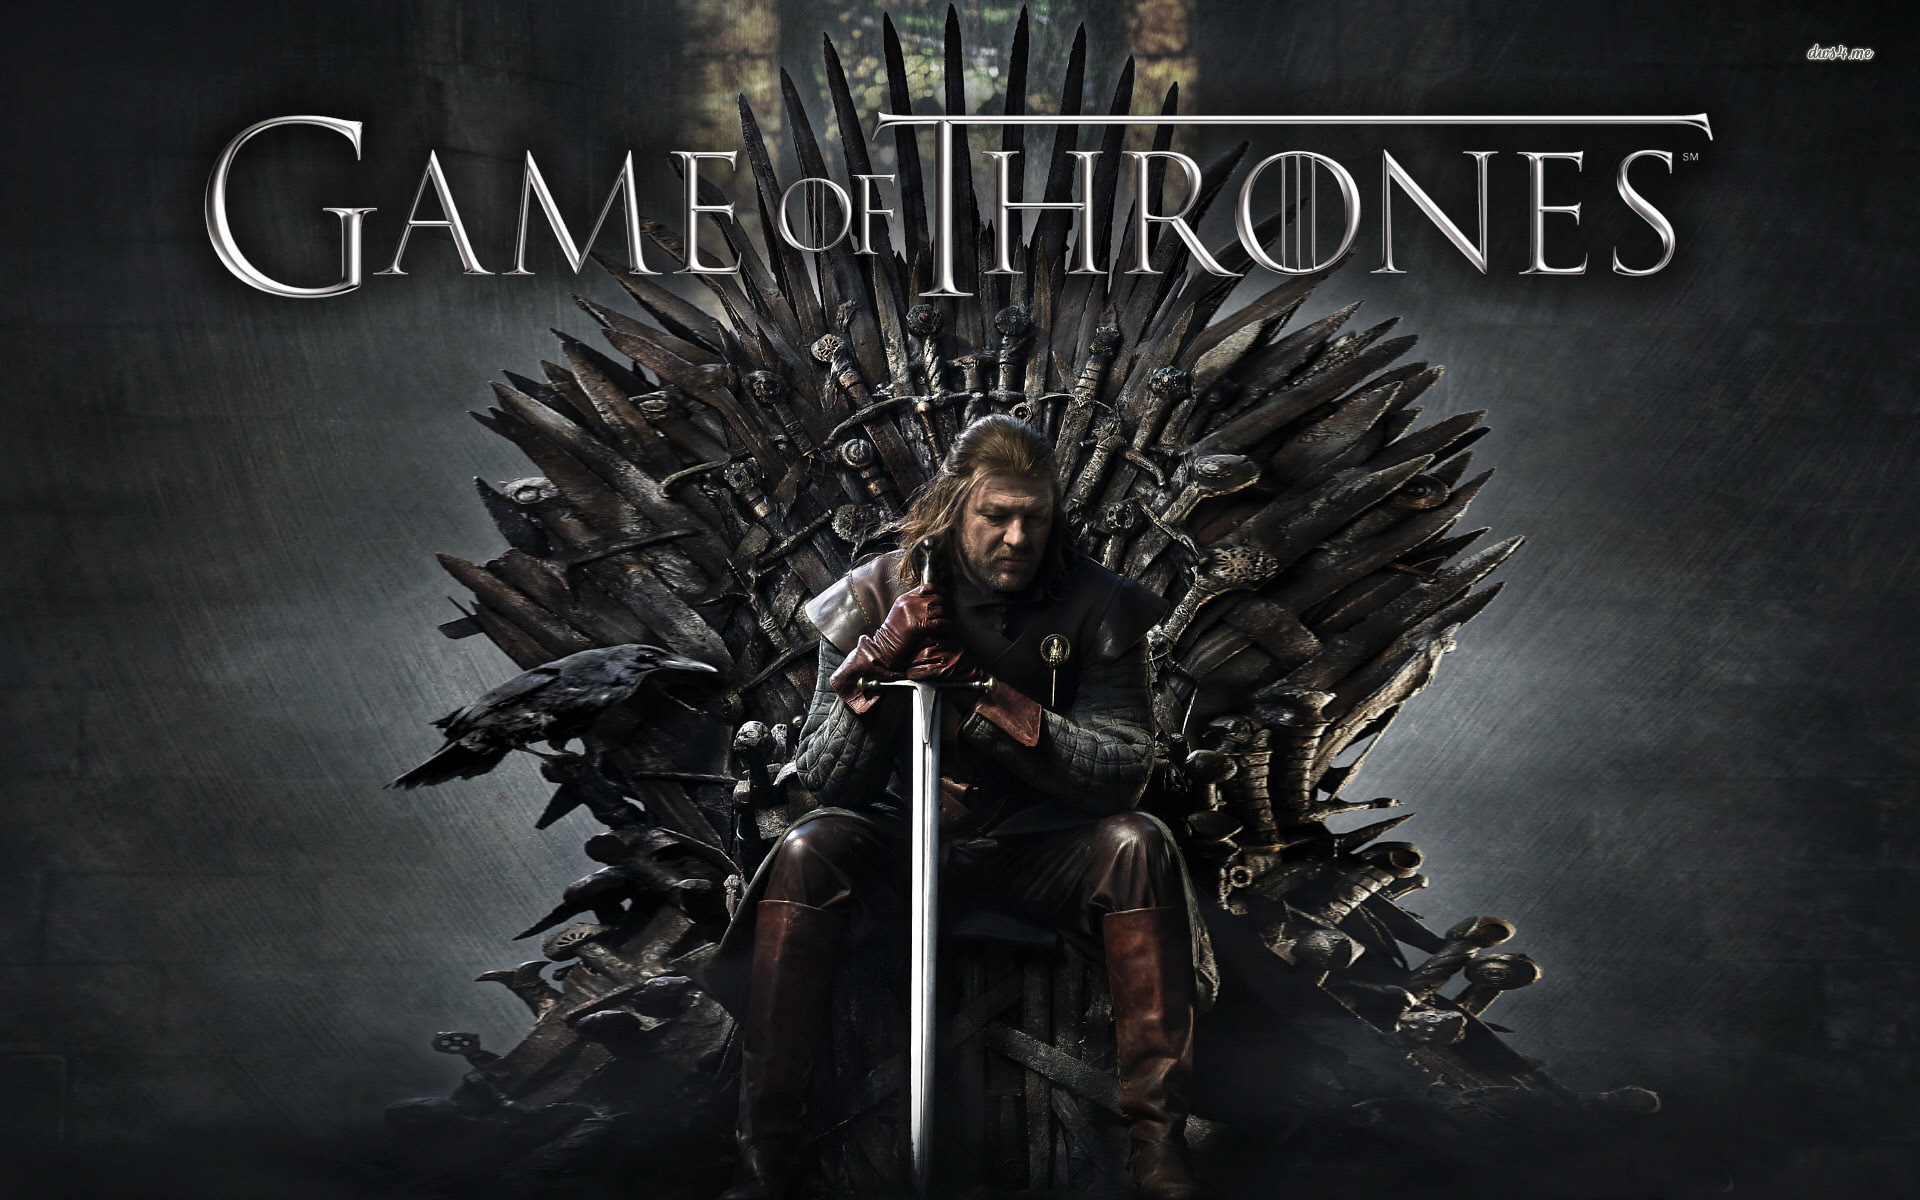 Hd Wallpapers Backgrounds For Game Of Thrones Free For: Game Of Thrones Season 1 HD Background